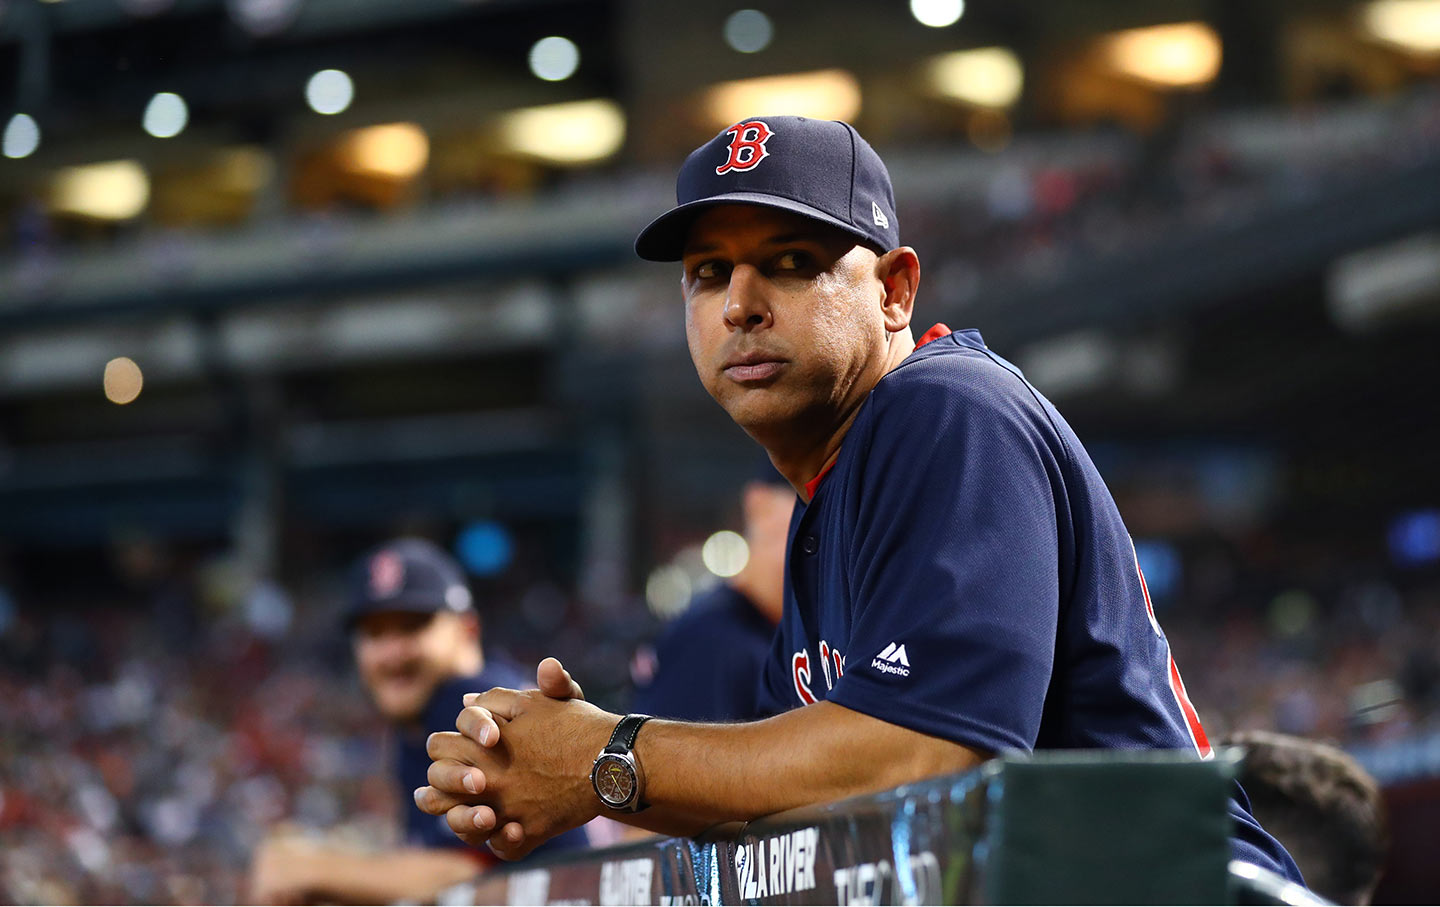 d983c85548726 Boston Red Sox manager Alex Cora at a baseball game in Phoenix in April.  (Mark J. Rebilas   USA Today Sports)